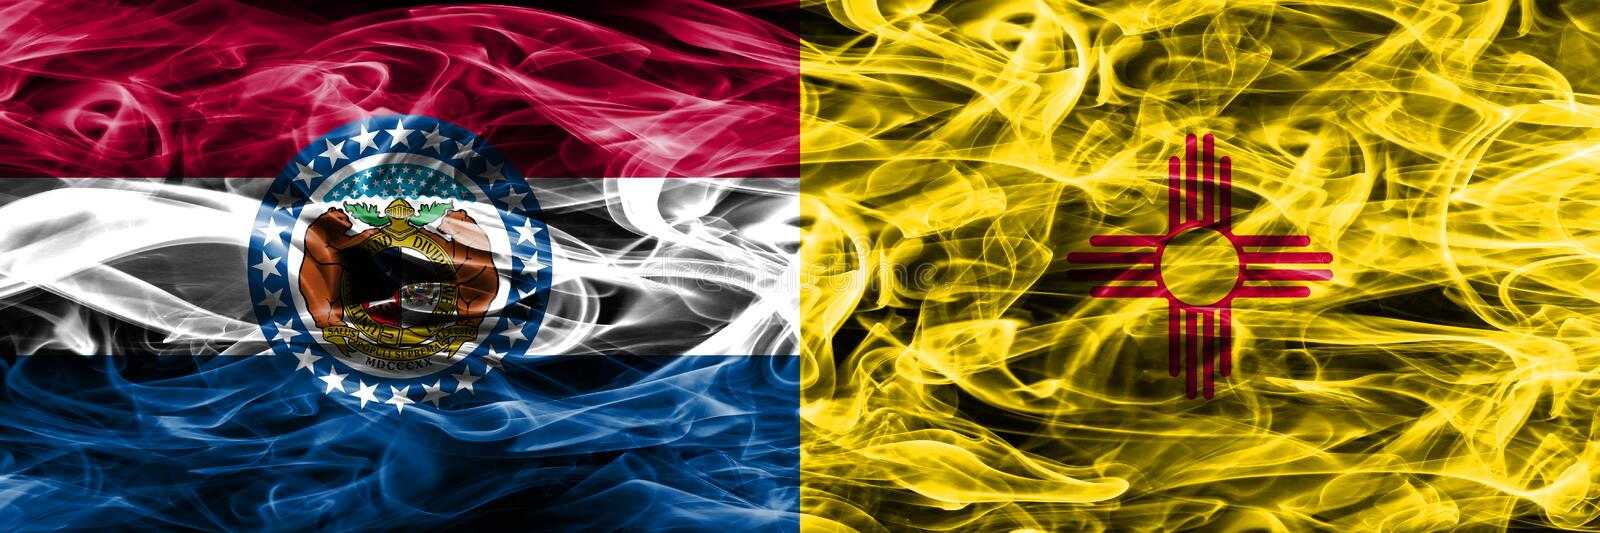 Missouri vs New Mexico colorful concept smoke flags placed side by side.  royalty free stock photo